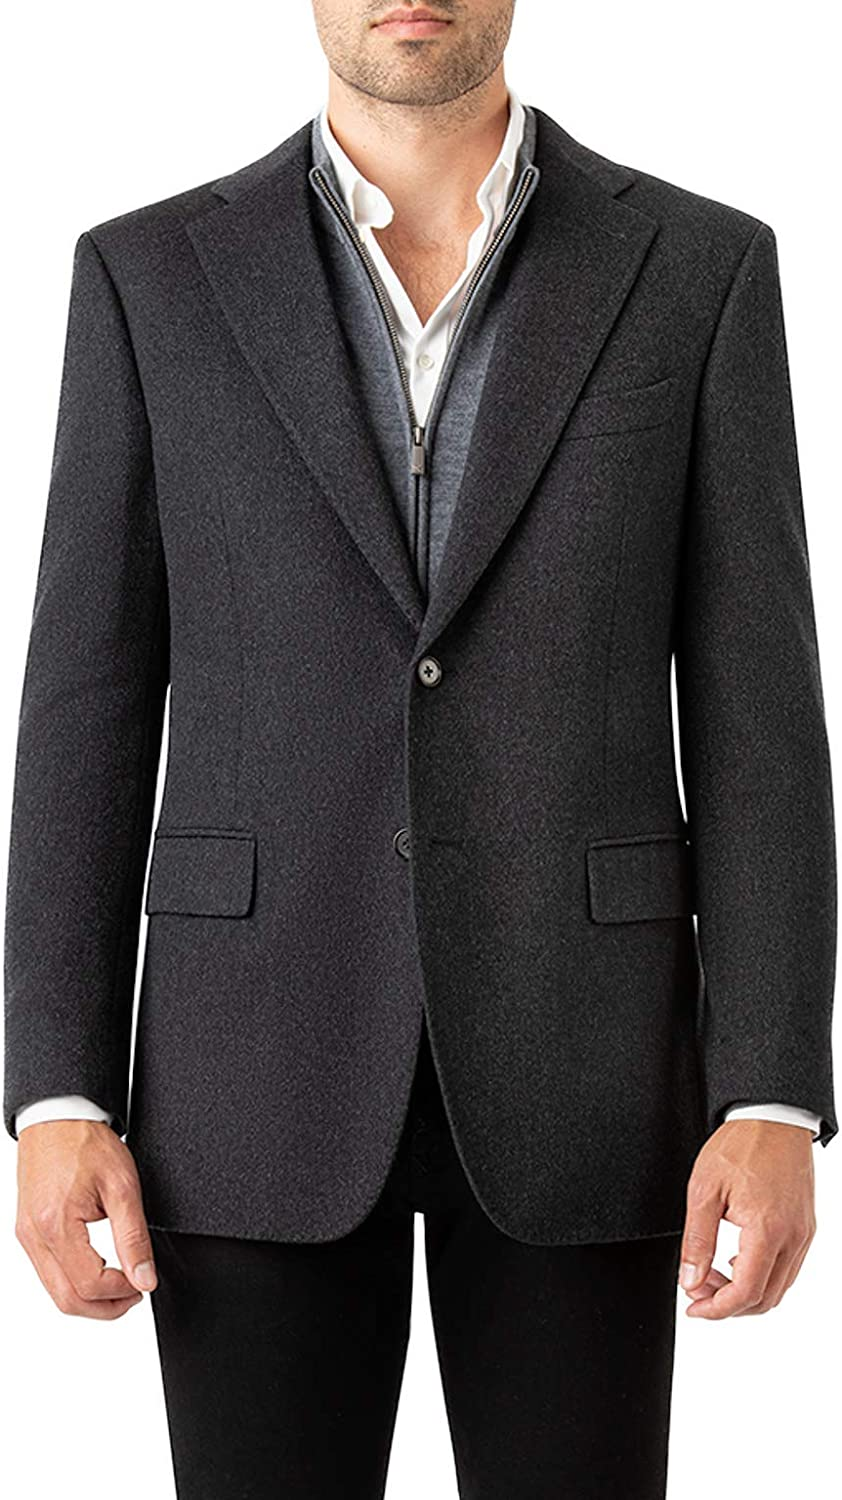 CARDINAL OF CANADA Men's Blazer, 100% Italian Cashmere Button Front Sport Coat - Stylish Casual and Business Jacket for Men